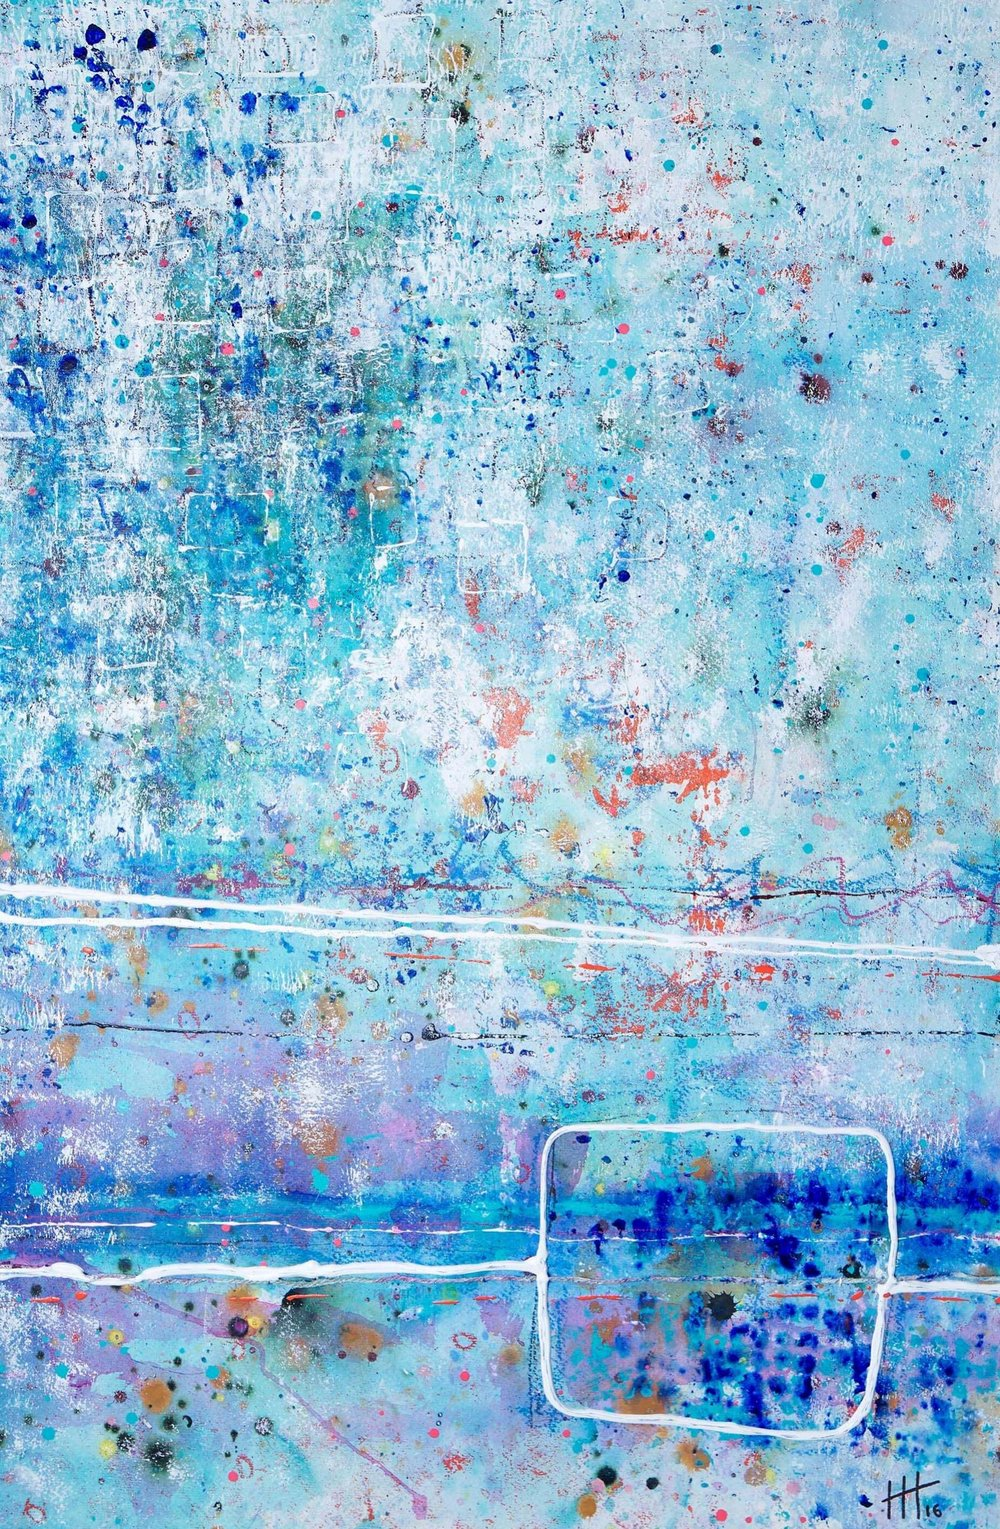 'For Charlotte' Acrylic & Mixed Media / 129cm x 93cm (framed) SOLD